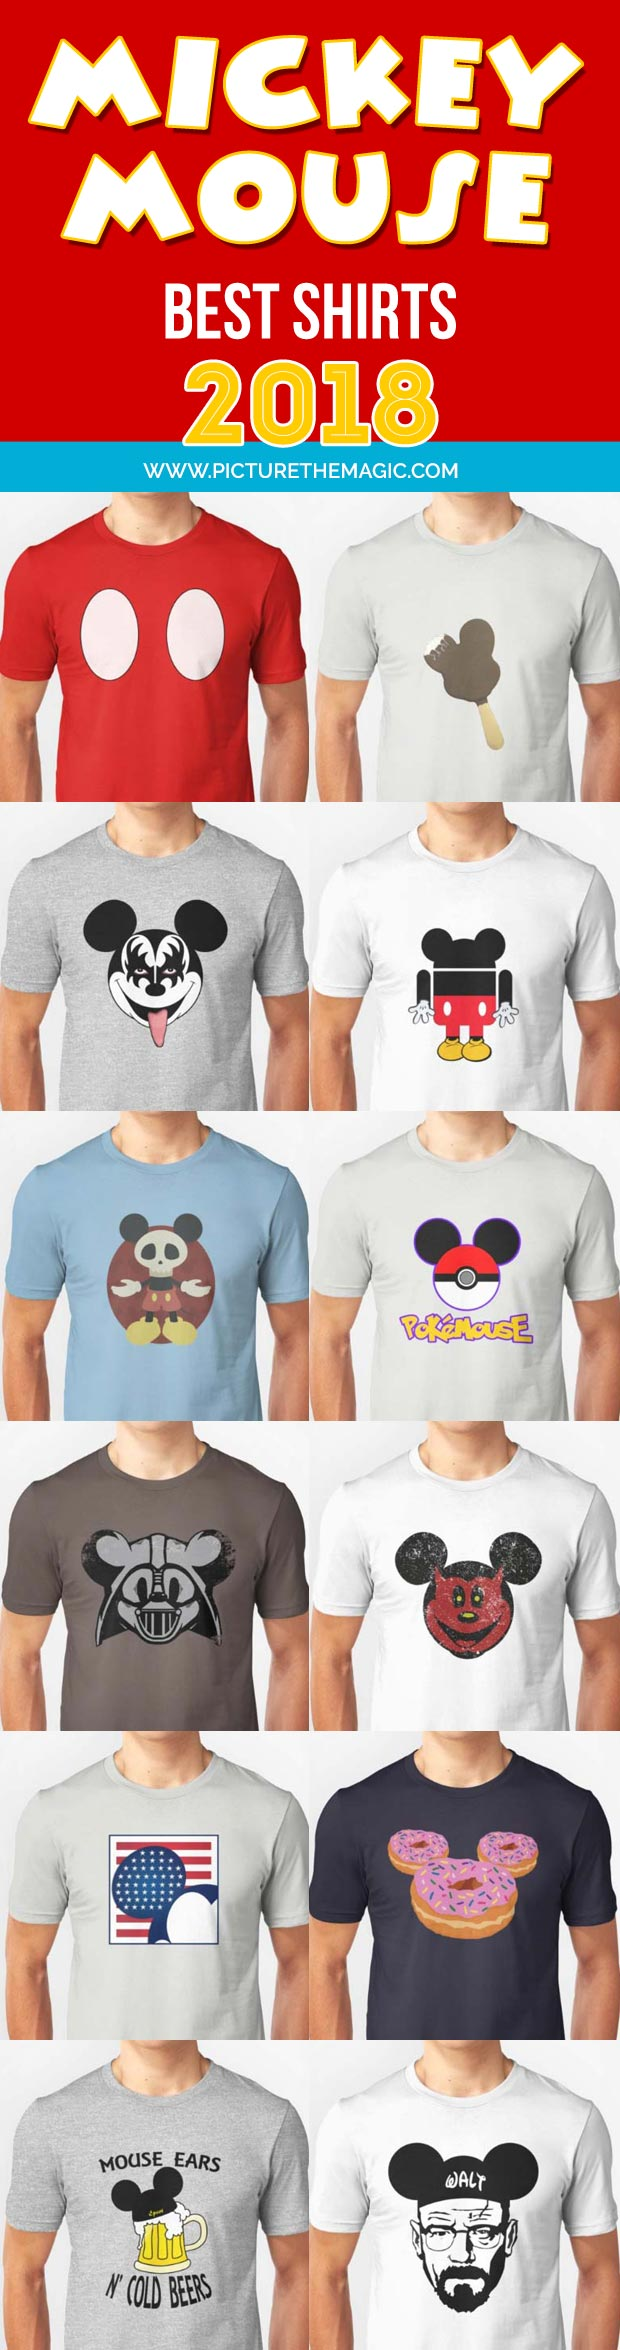 9d7c68c5e38593 Best Mickey Mouse Shirts (June 2019) - Buyer's Guide and Reviews